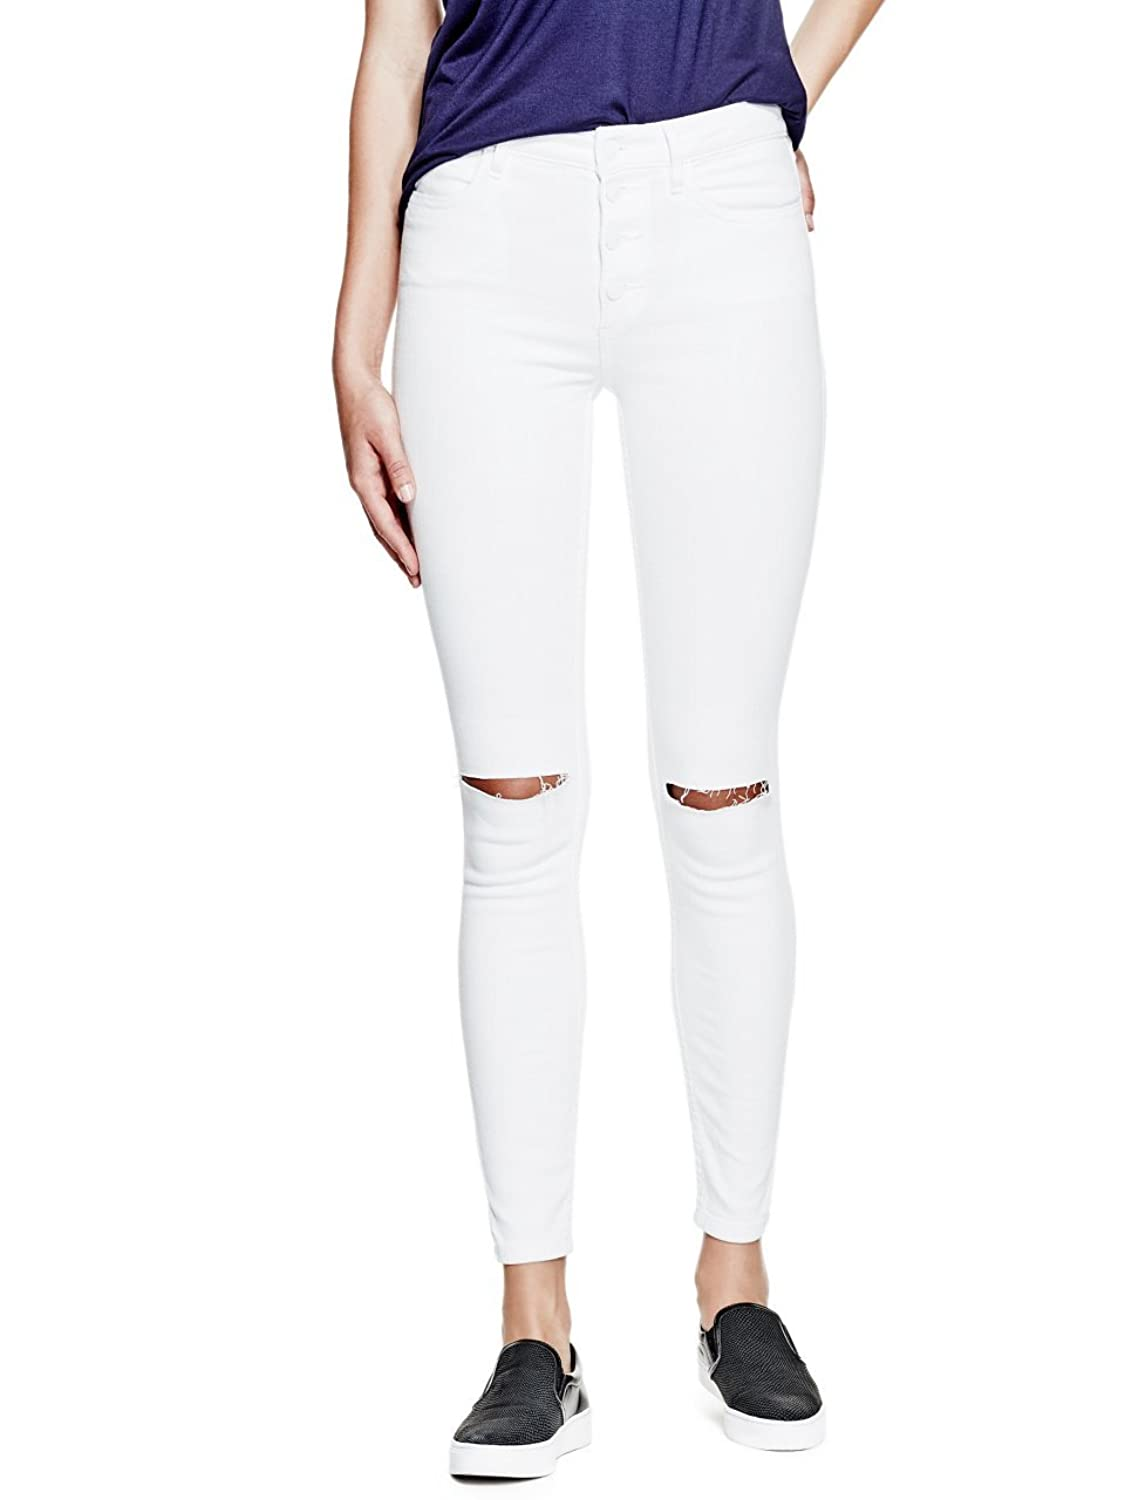 GUESS 1981 Button-Front Skinny Jeans